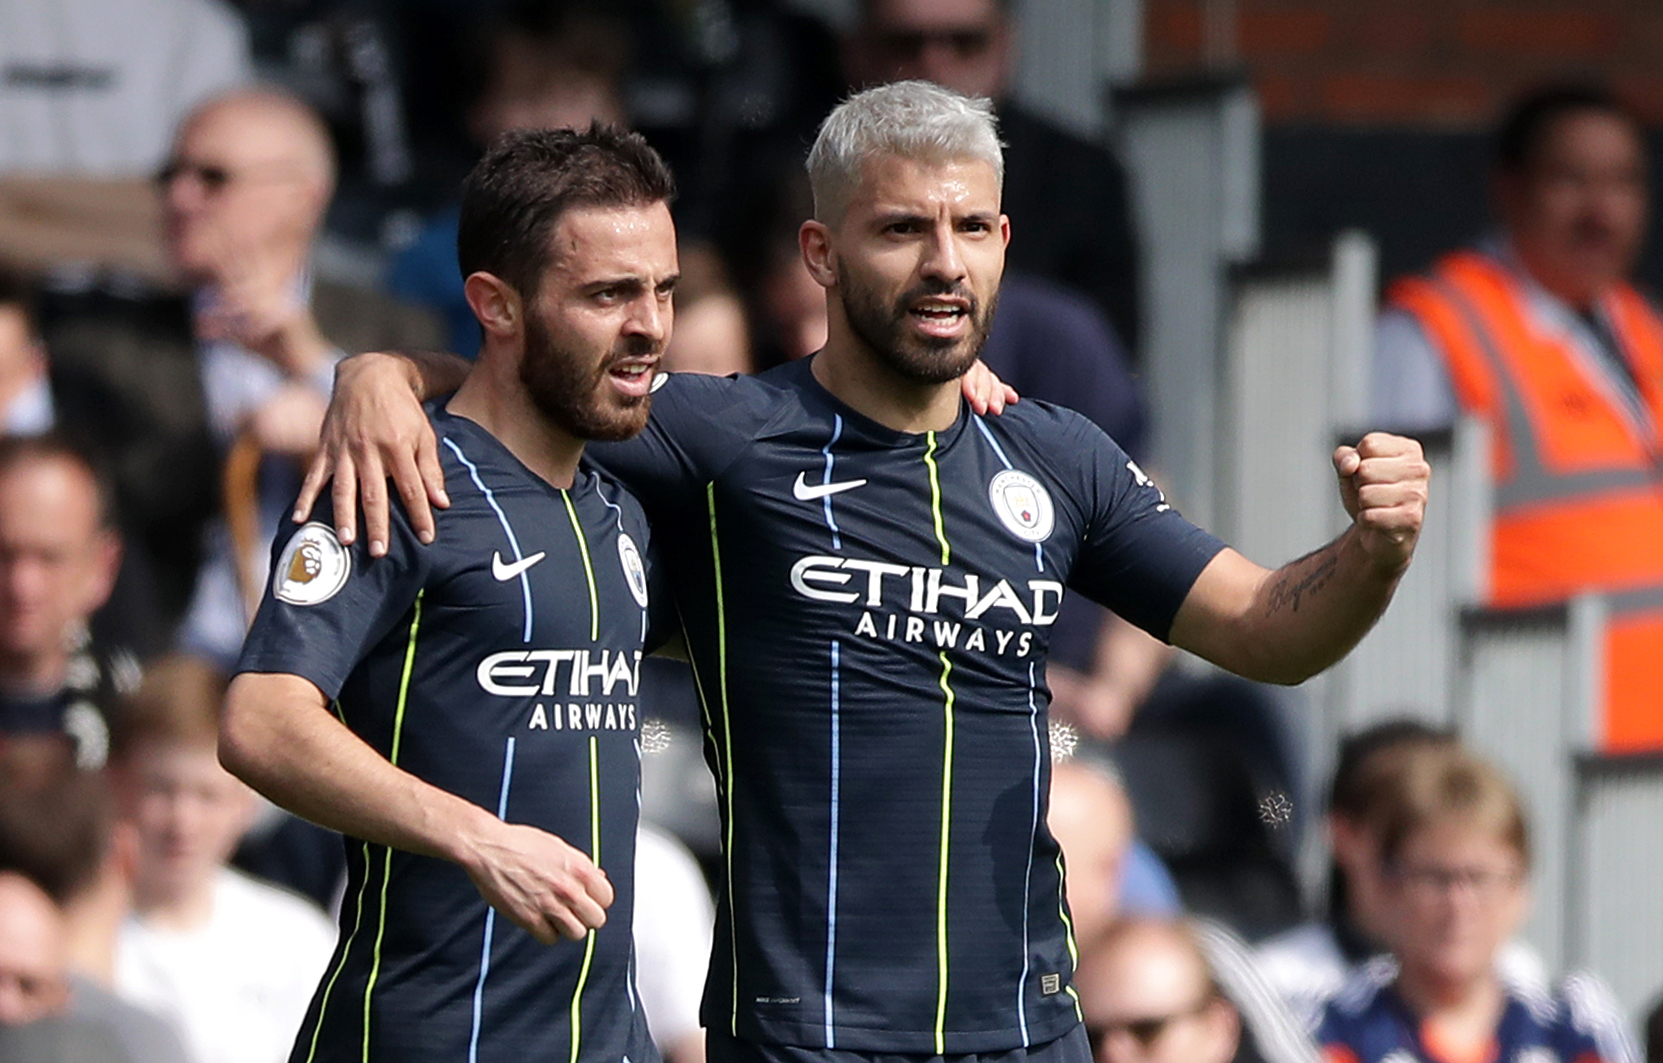 Sergio Aguero's fitness could be the key to Man City's quadruple bid